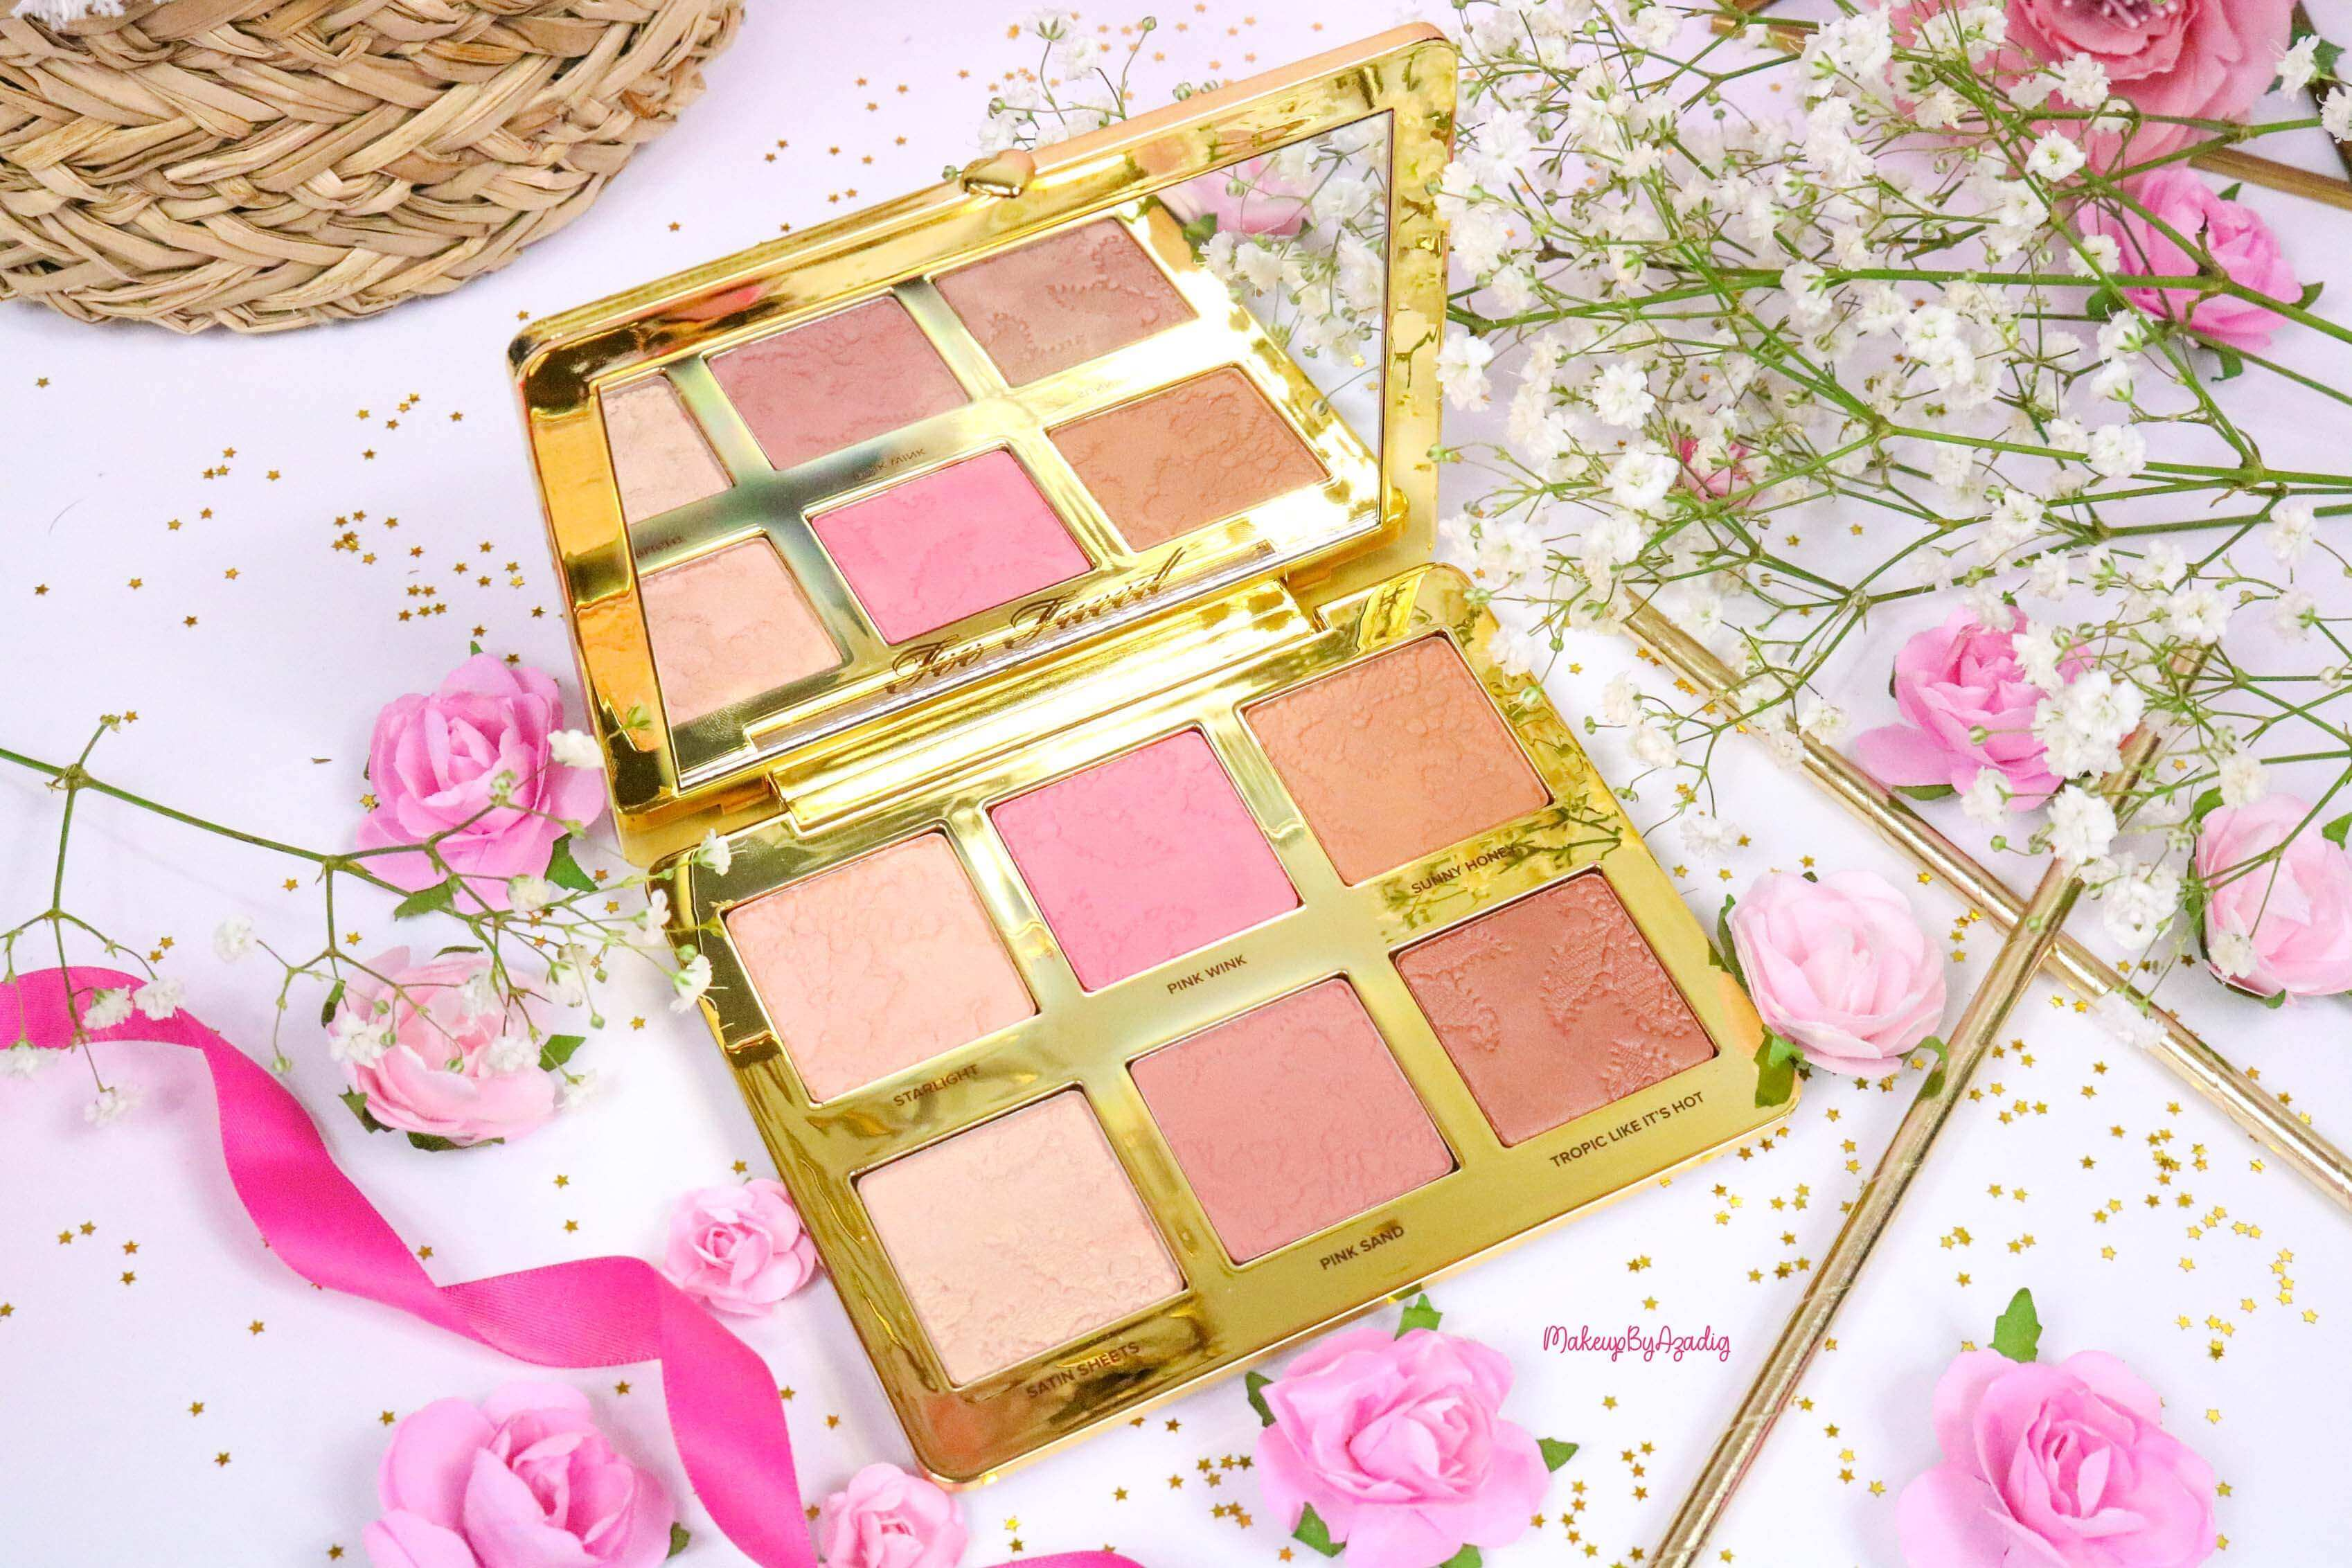 revue-review-palette-teint-natural-face-too-faced-makeupbyazadig-sephora-france-avis-prix-swatch-blush-highlighter-teinte